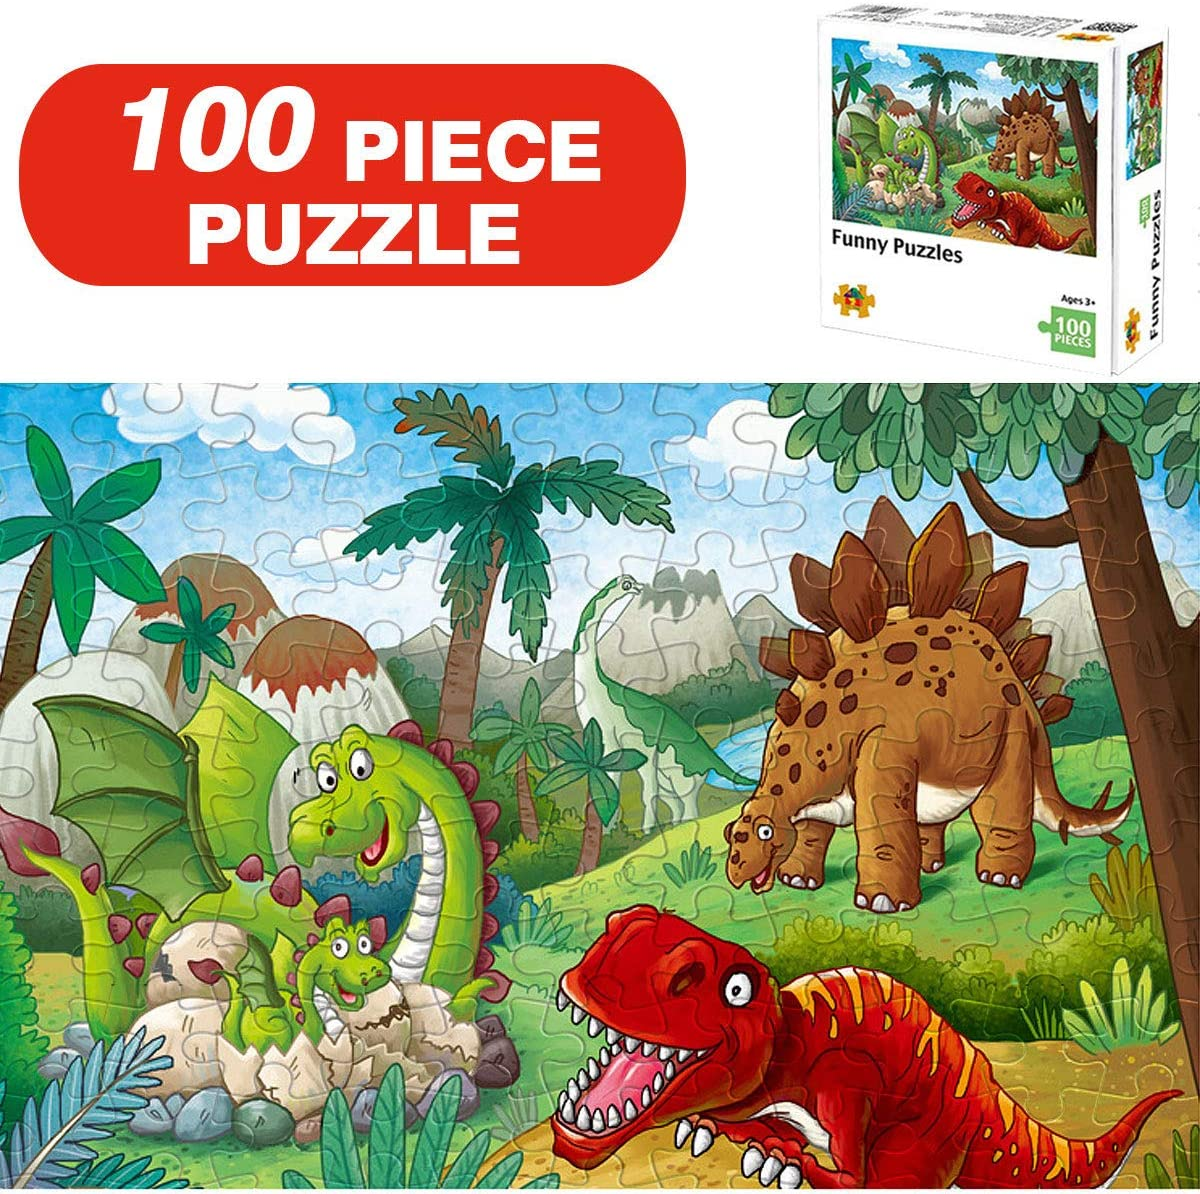 Jigsaw Puzzles for Kids Age 4-8 Year Old - Wooden Dinosaur Toddler Puzzles Preschool Educational Toy Games for Children,Boys and Girls (100 Piece Puzzle)